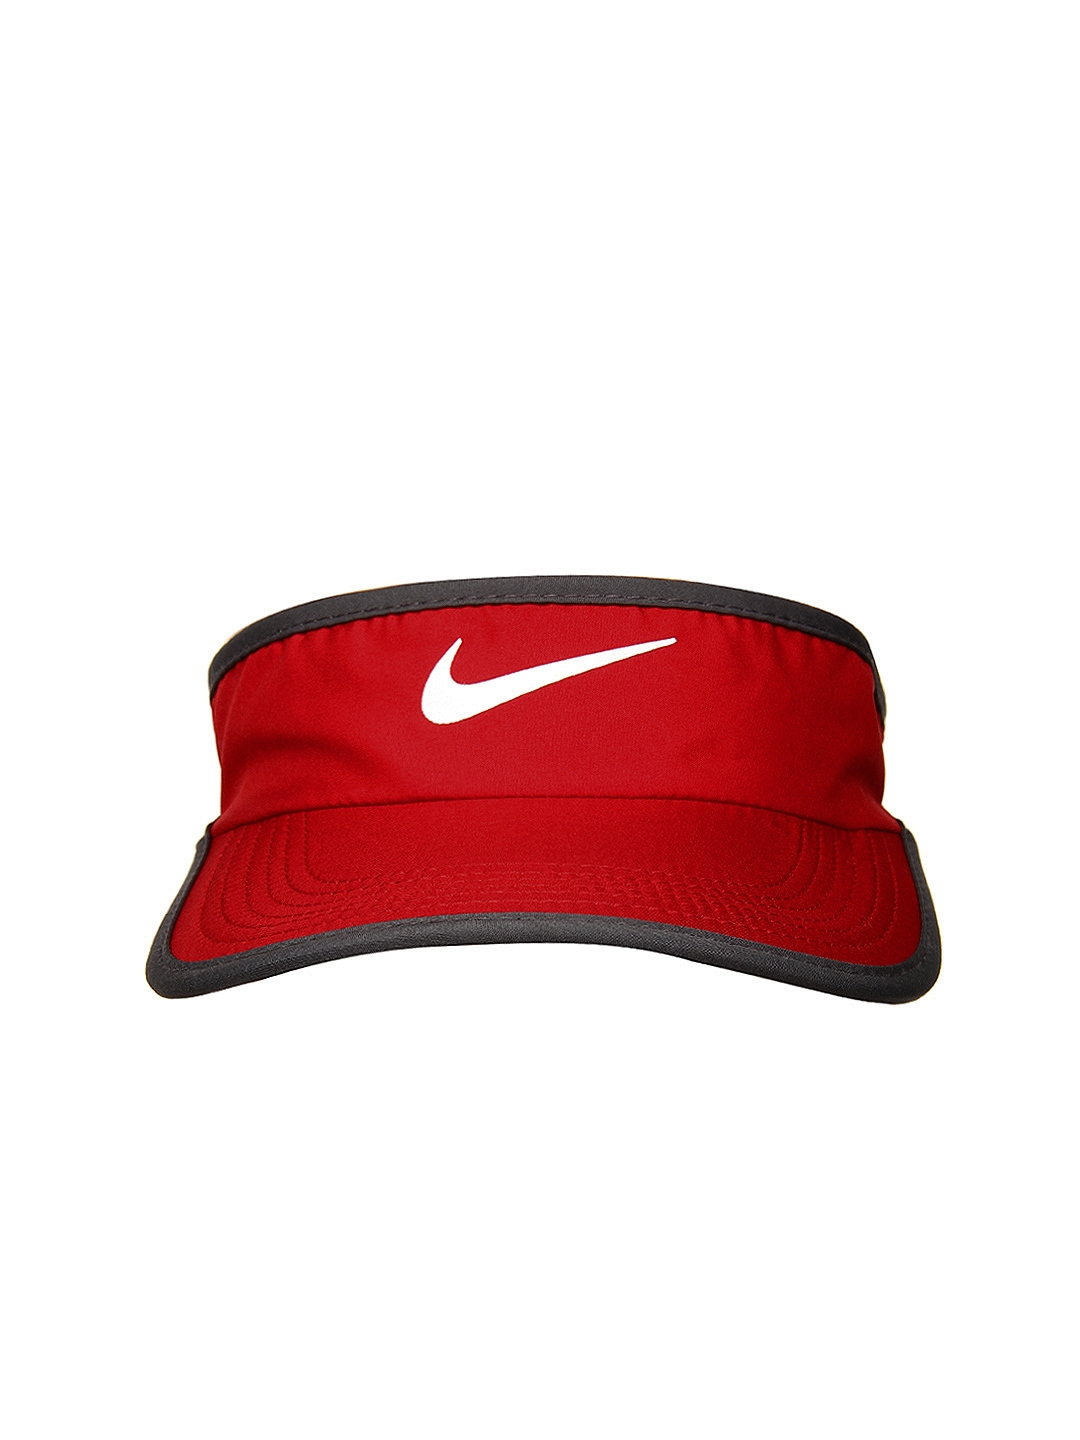 c4bdab342 Nike Red & Grey Ws Feather Light Visor Tennis Caps